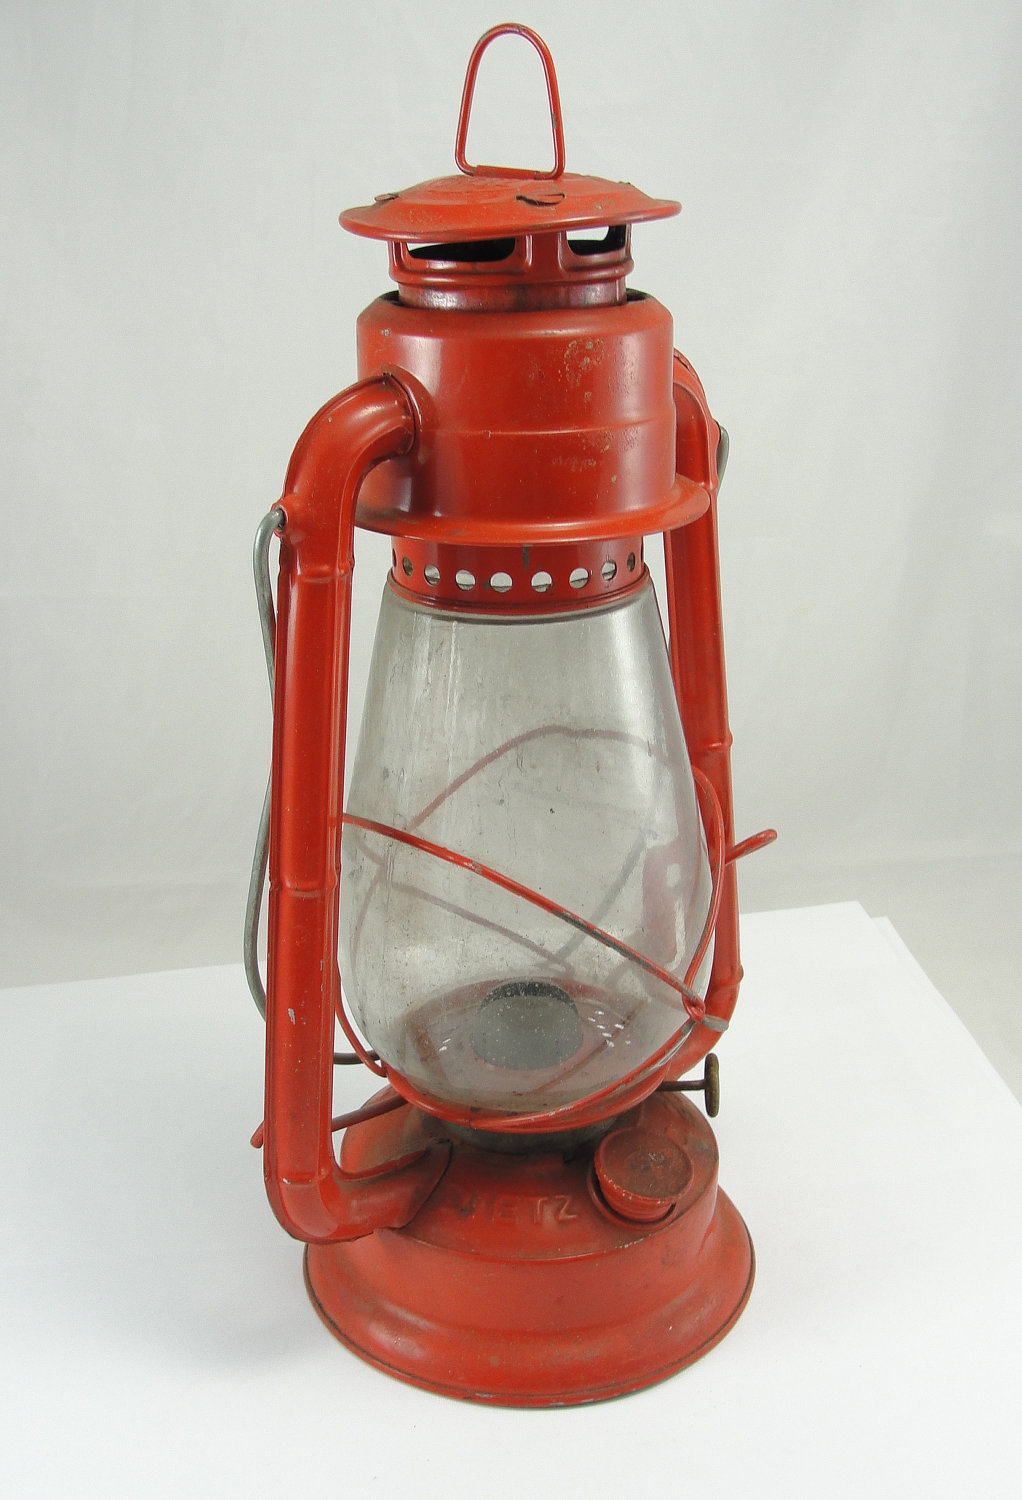 Relaxshacks.com: Vintage Oil and Kerosene Heaters/Heat for ...